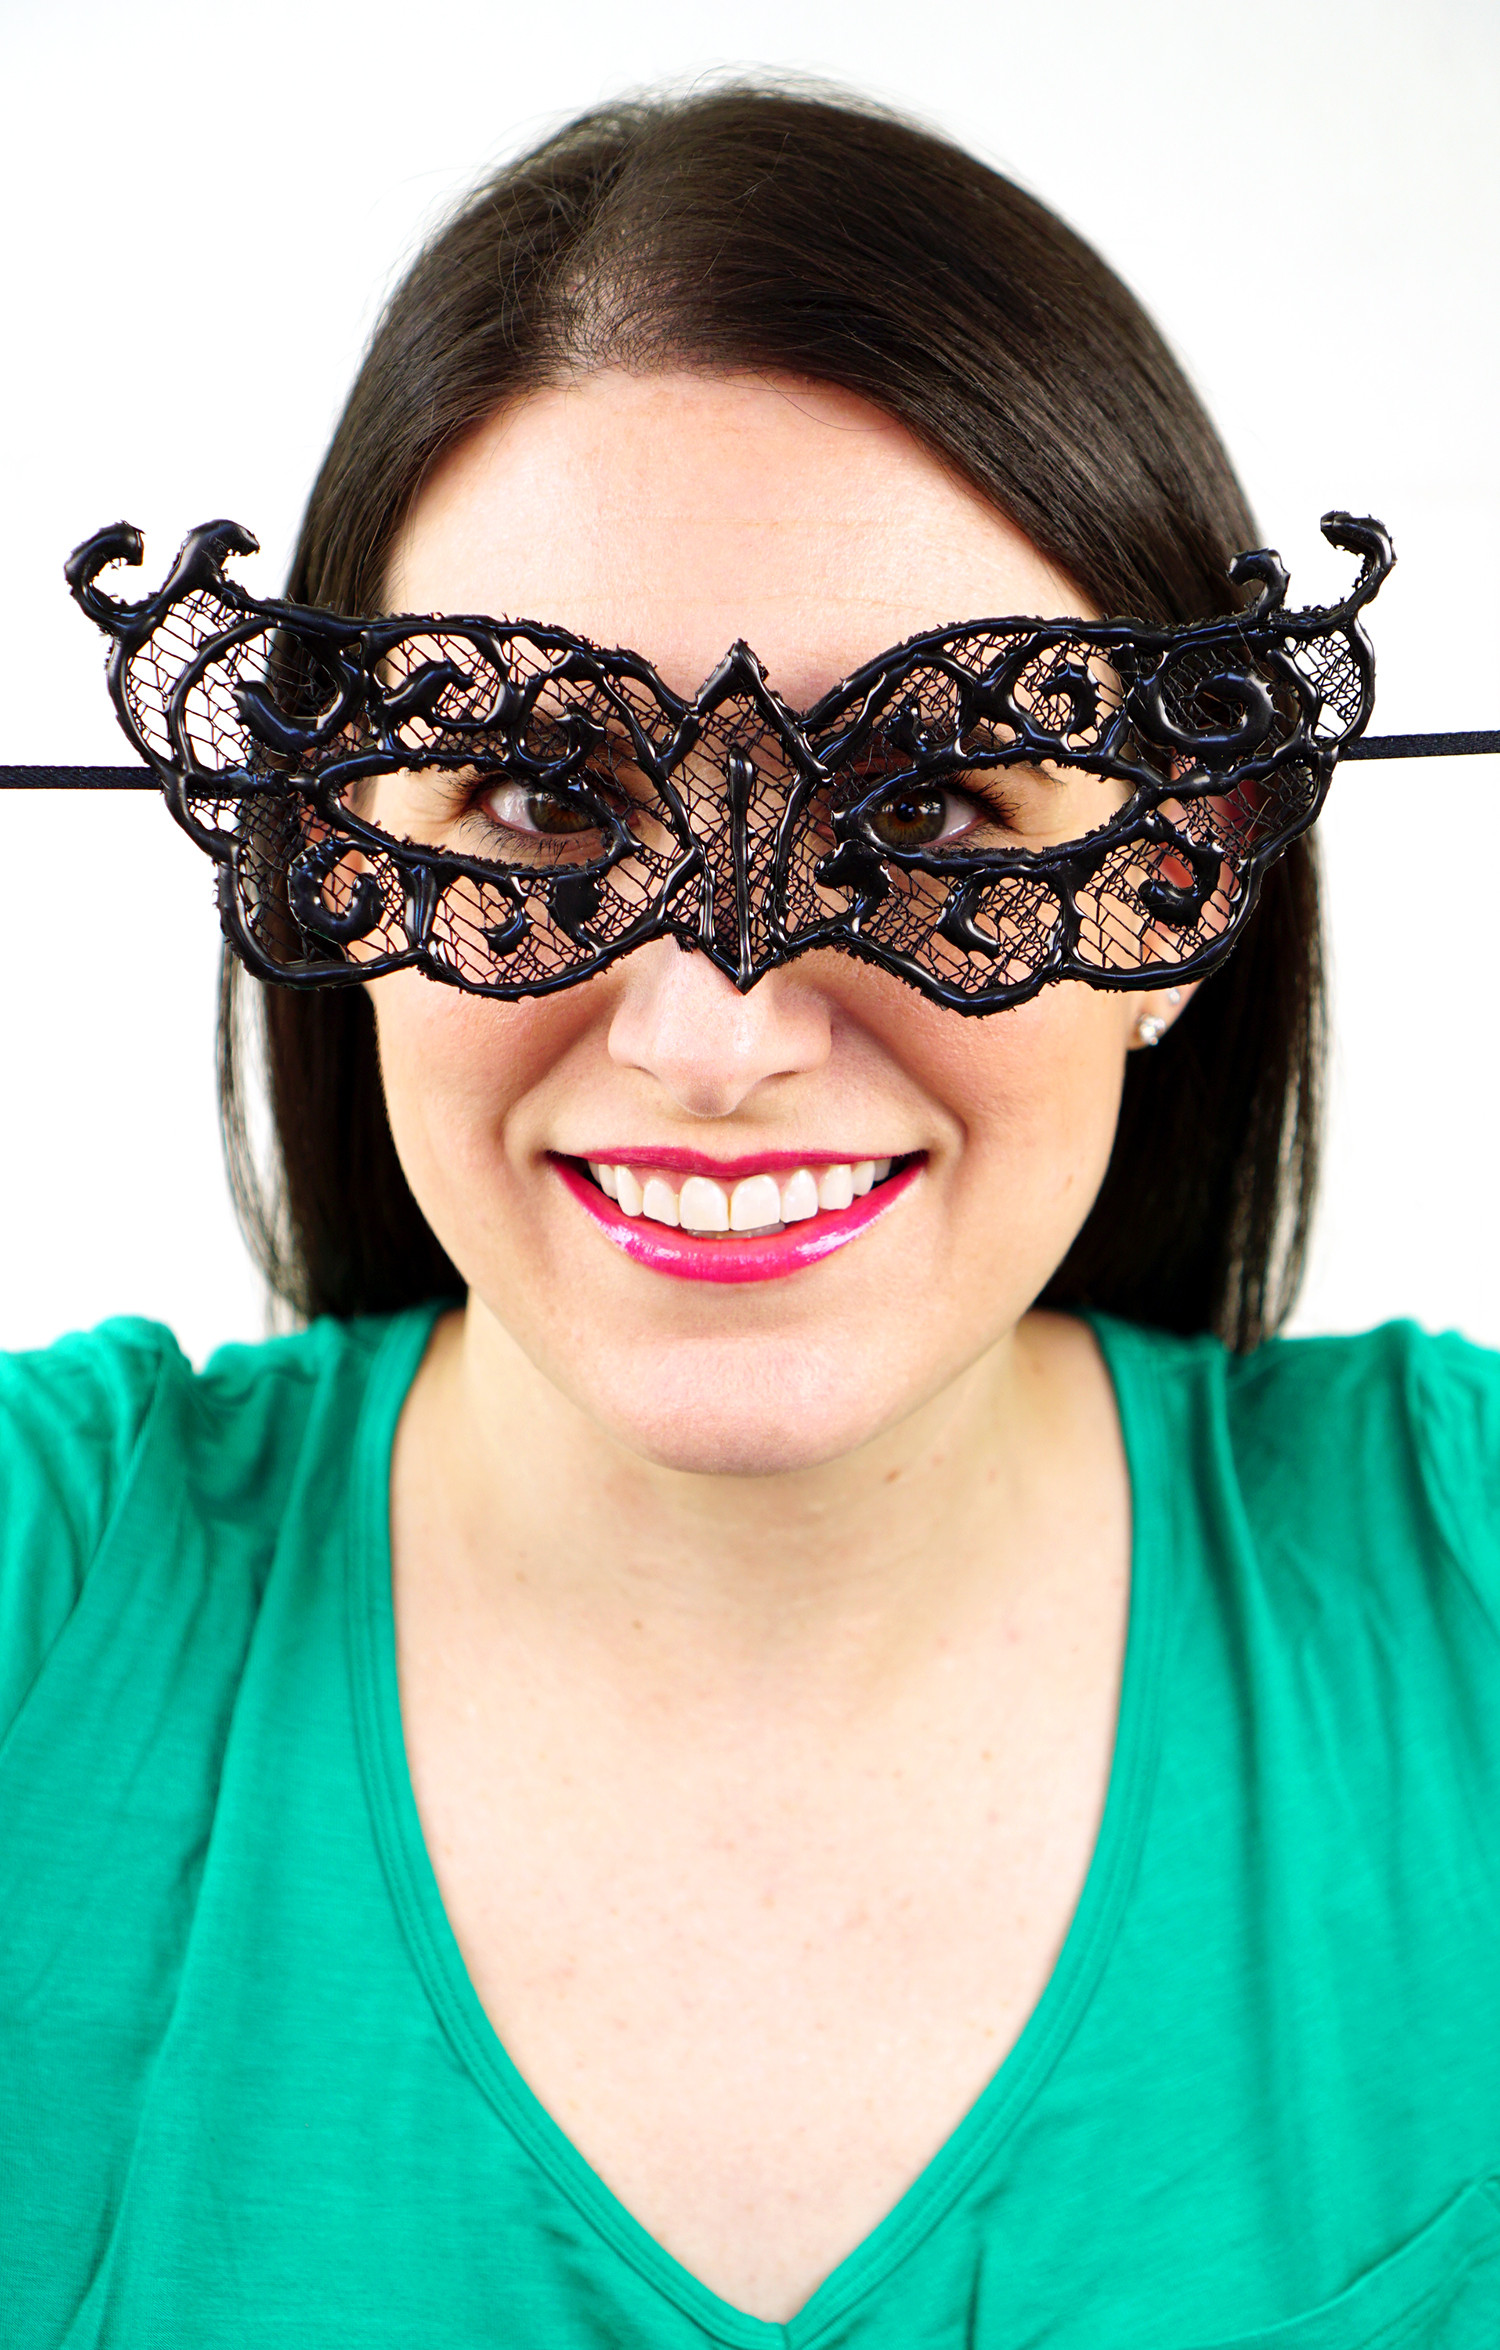 Best ideas about DIY Lace Masquerade Mask . Save or Pin Easy DIY Lace Masquerade Mask from Hot Glue Happiness is Now.